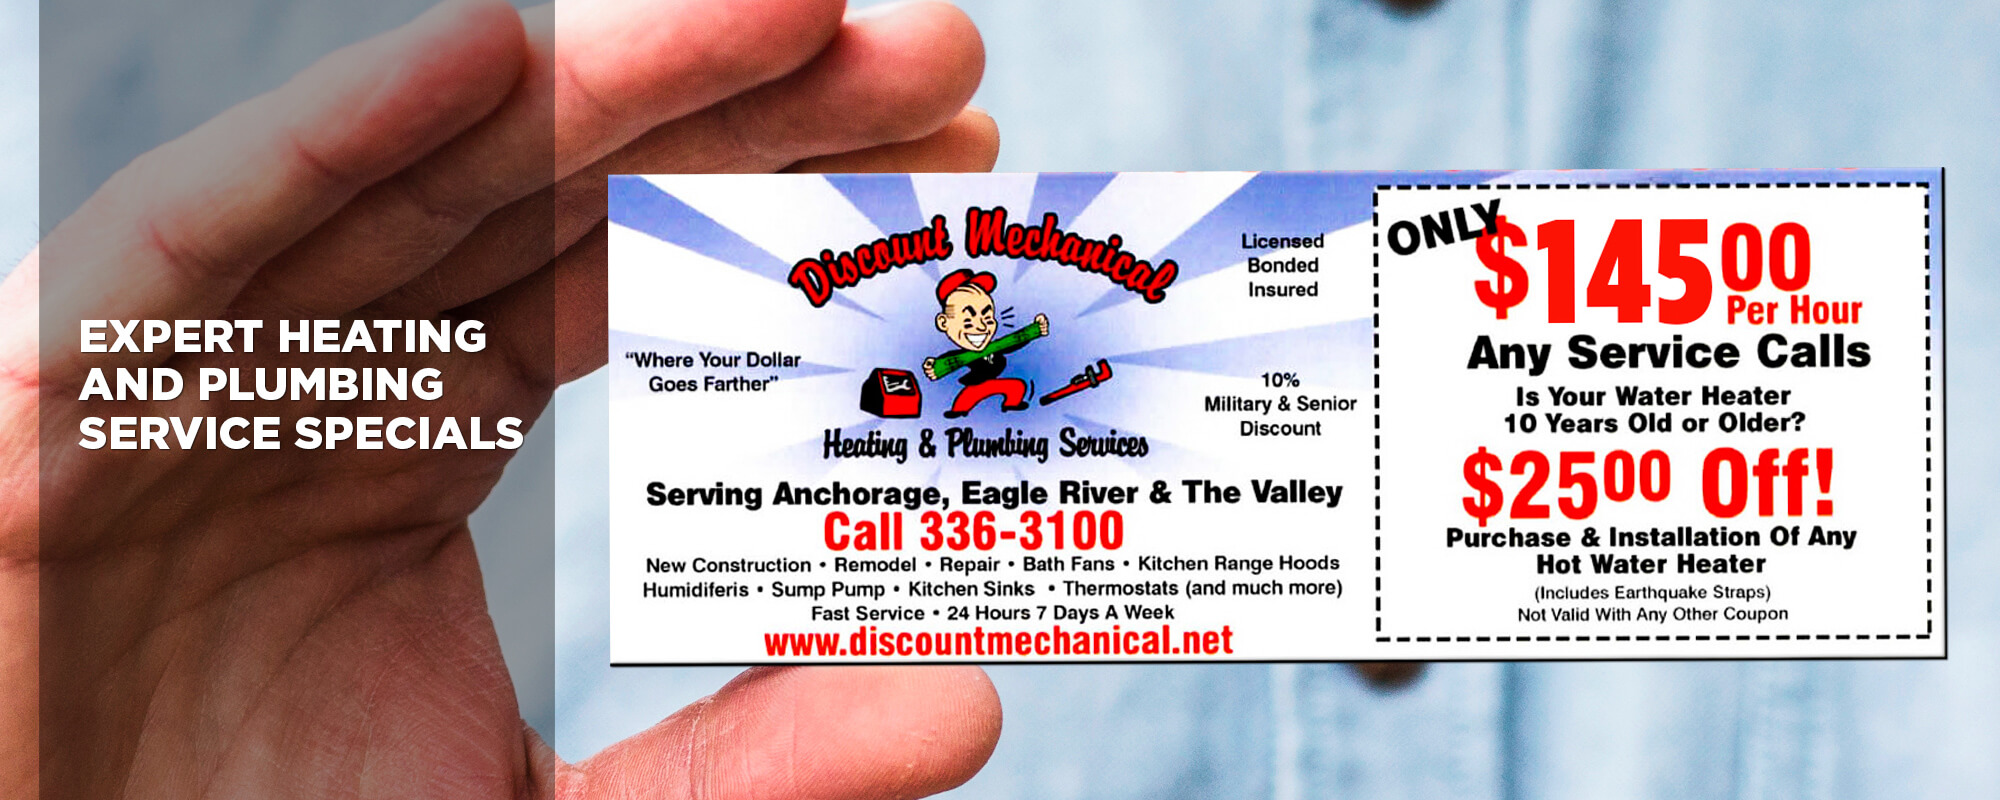 Discount Mechanical Heating & Plumbing Services discount coupon